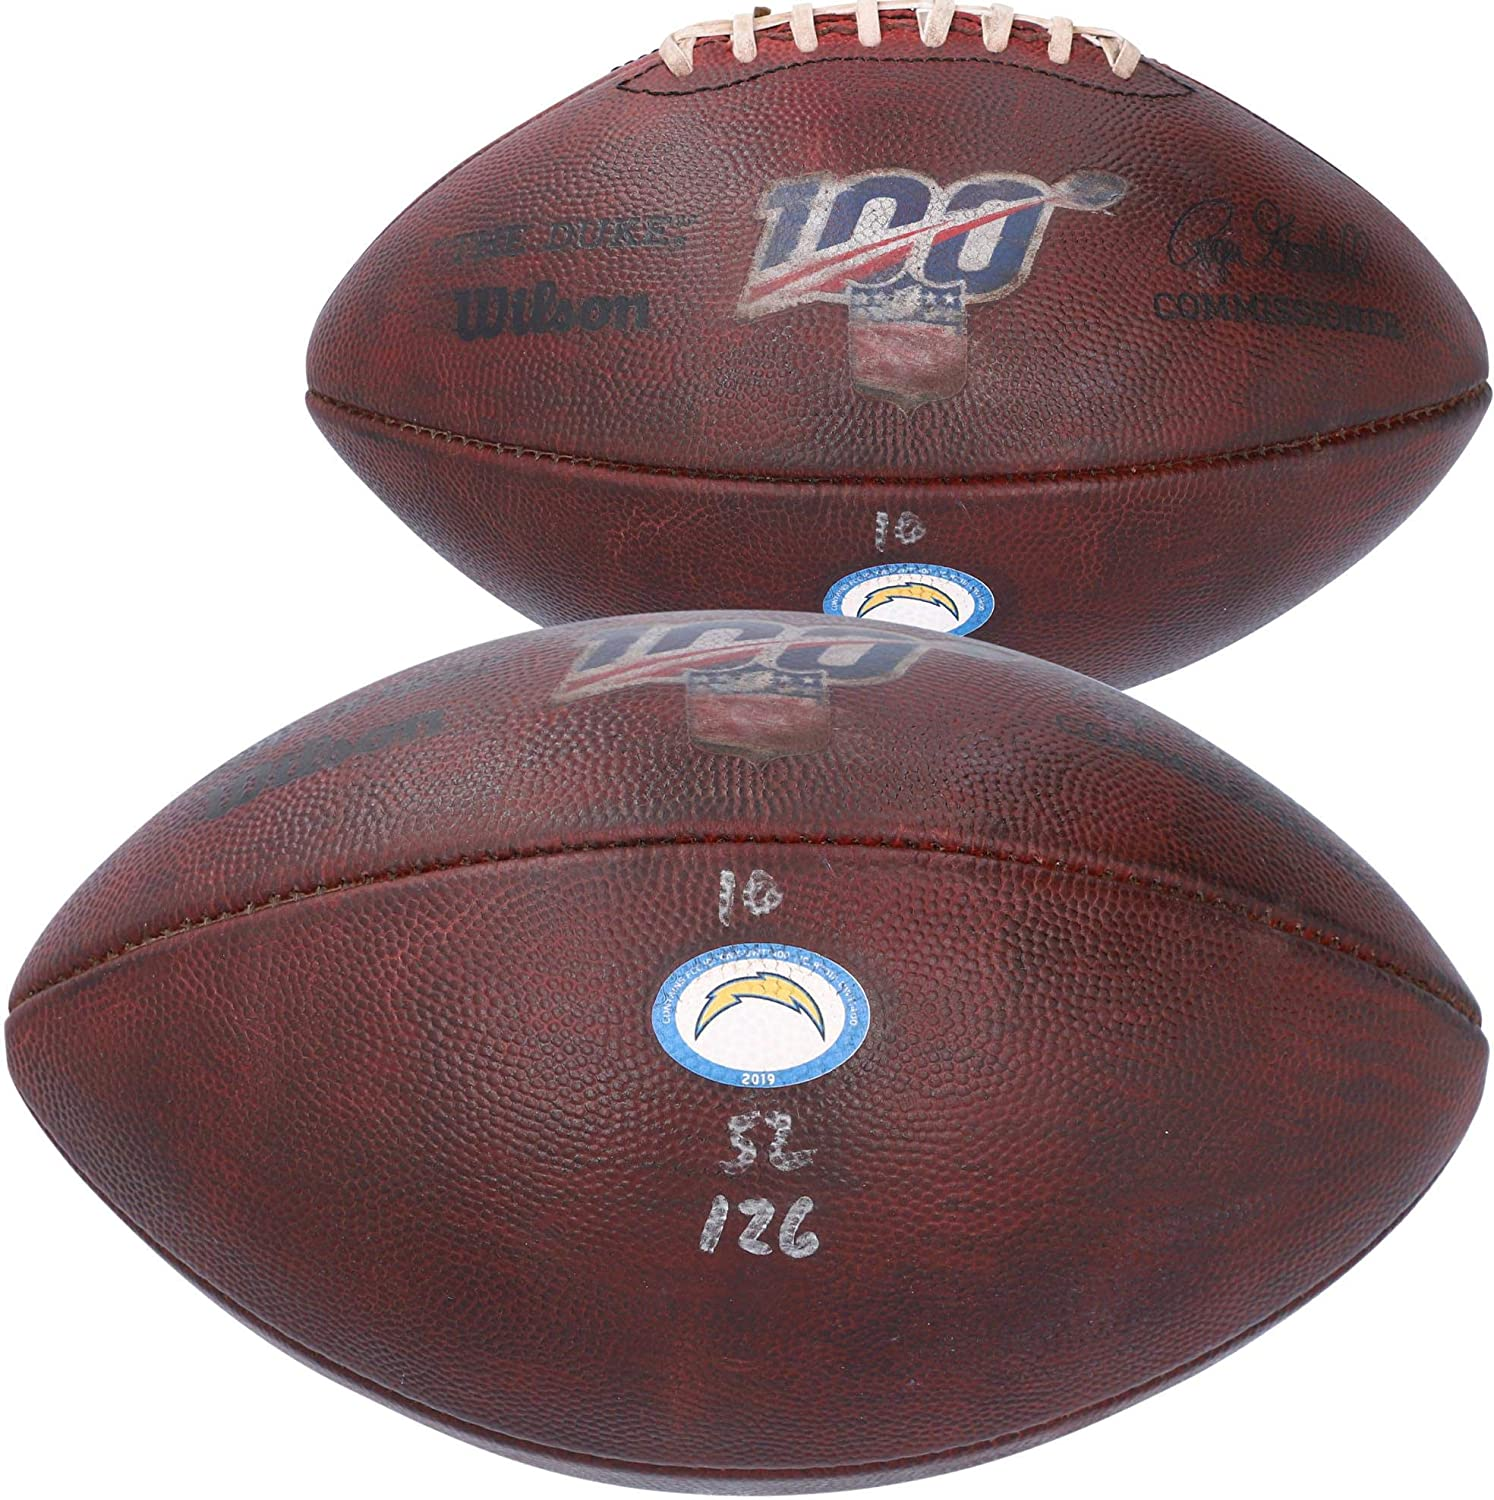 Los Angeles Chargers Game-Used Football vs. Chicago Bears on October 27, 2019 - Fanatics Authentic Certified